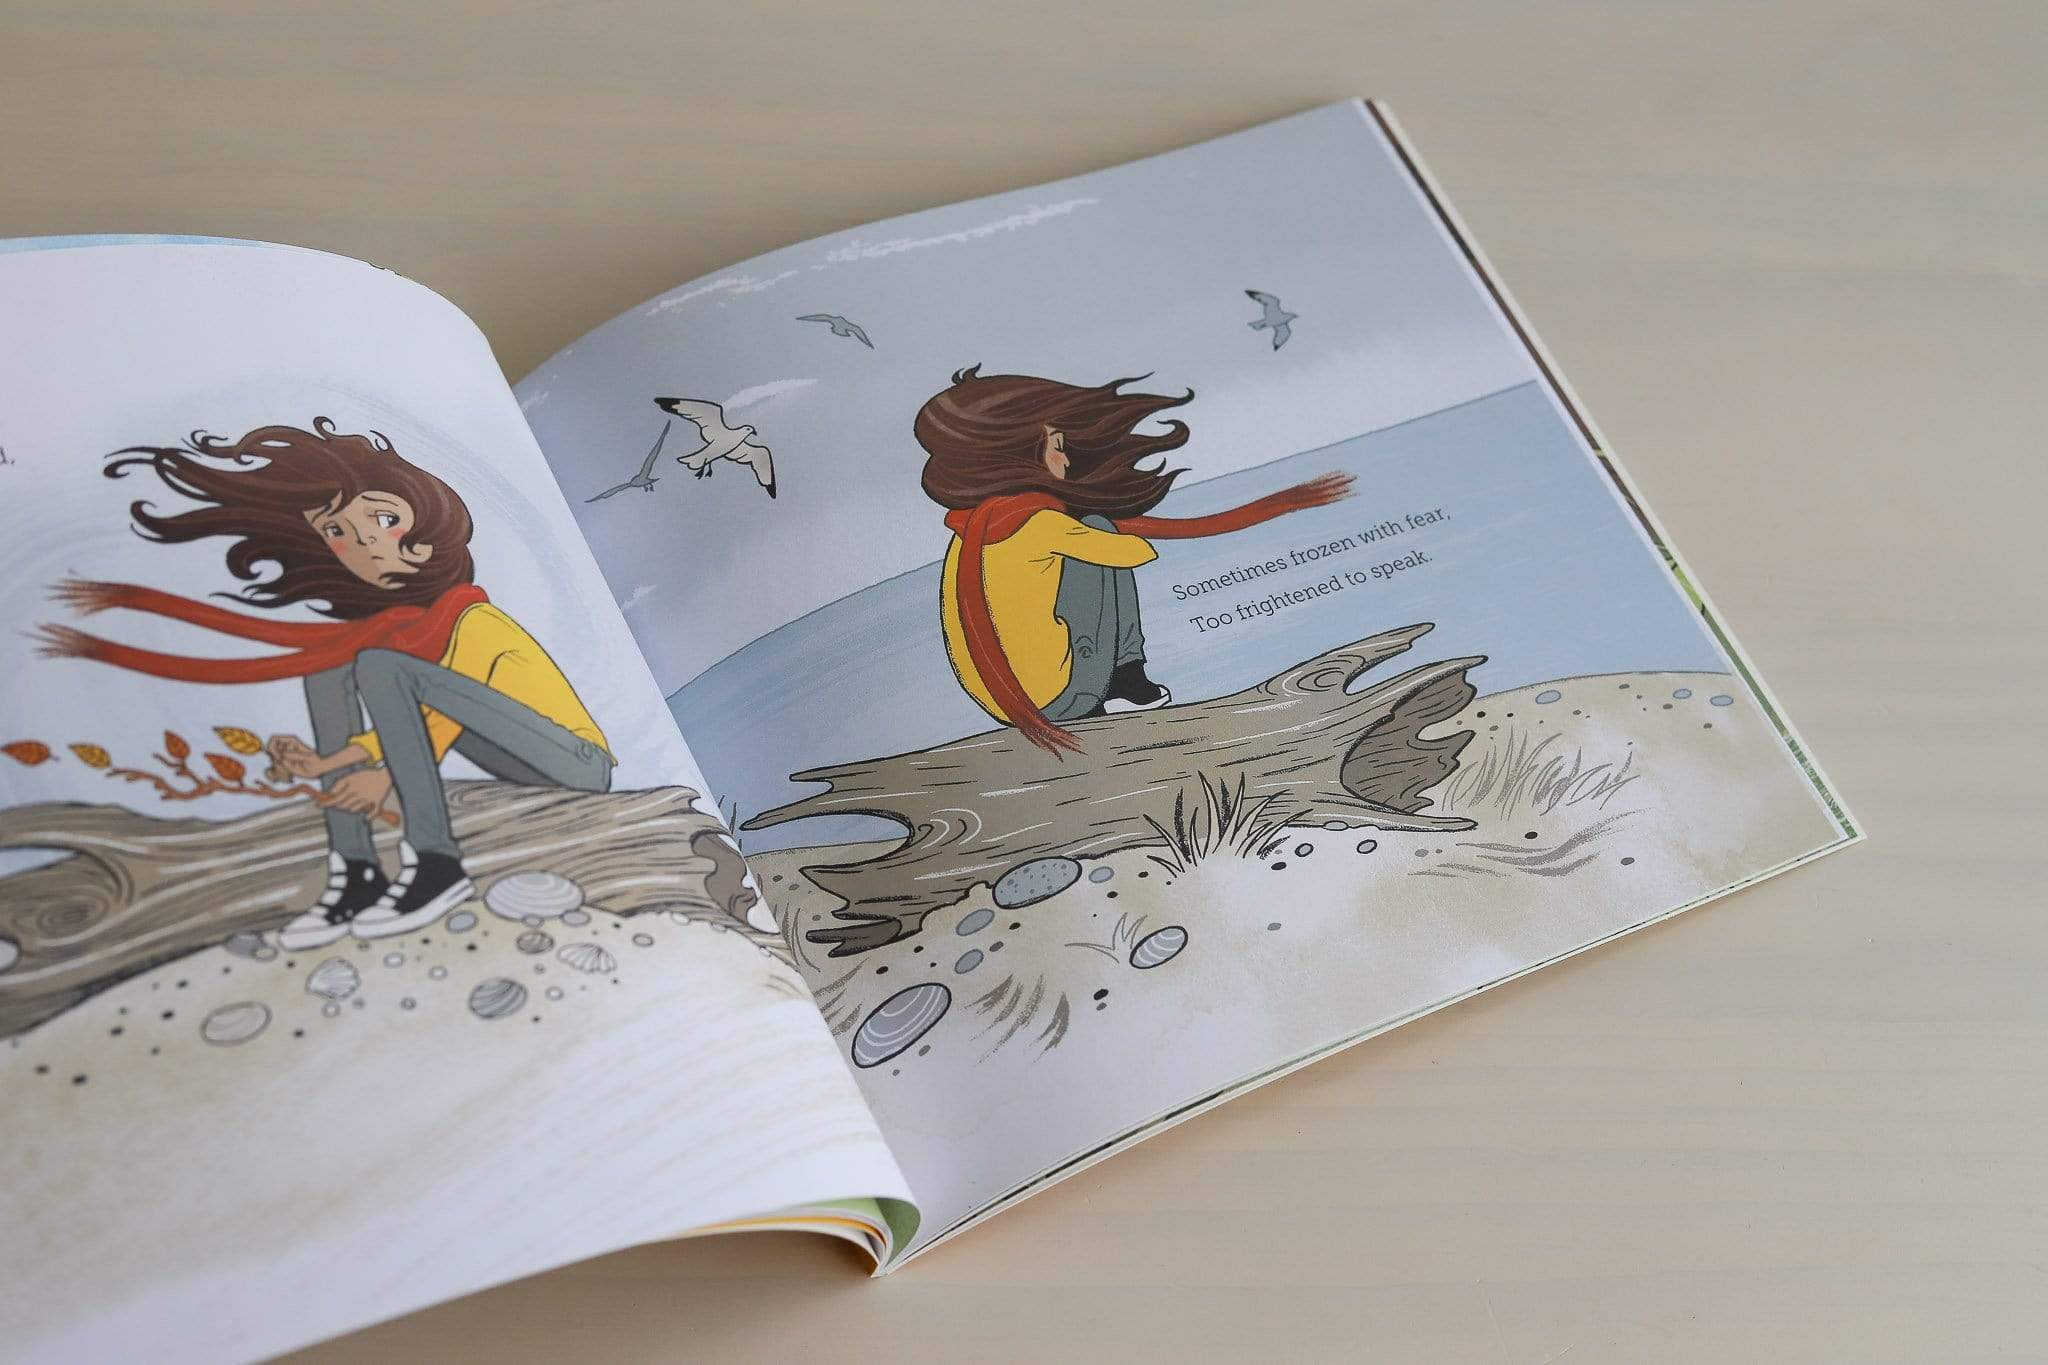 Aroha's Way- A children's guide through emotions